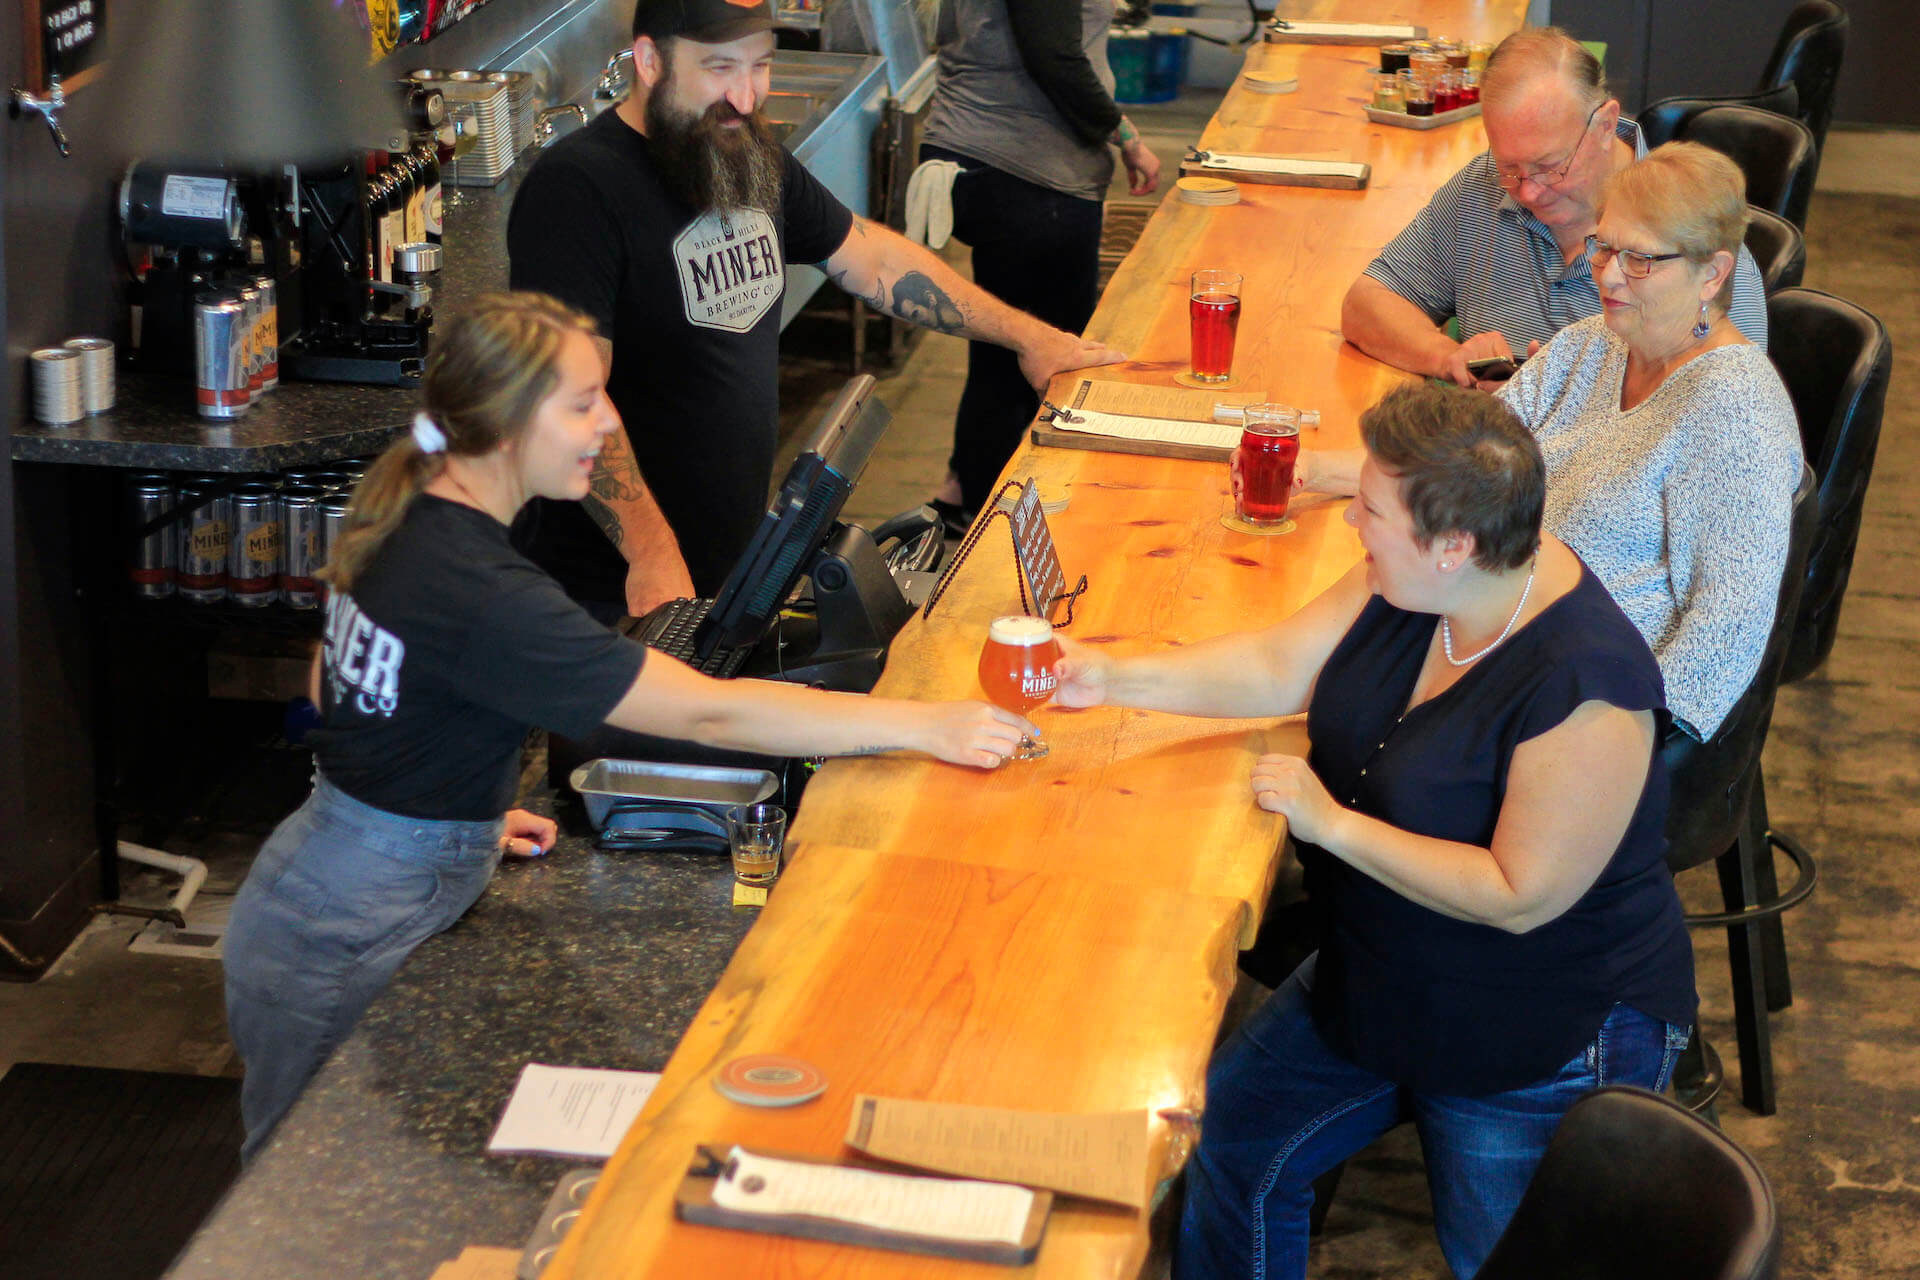 Staff at the Miner Brewing Co. and Prairie Berry Winery Taproom in Sioux Falls, South Dakota